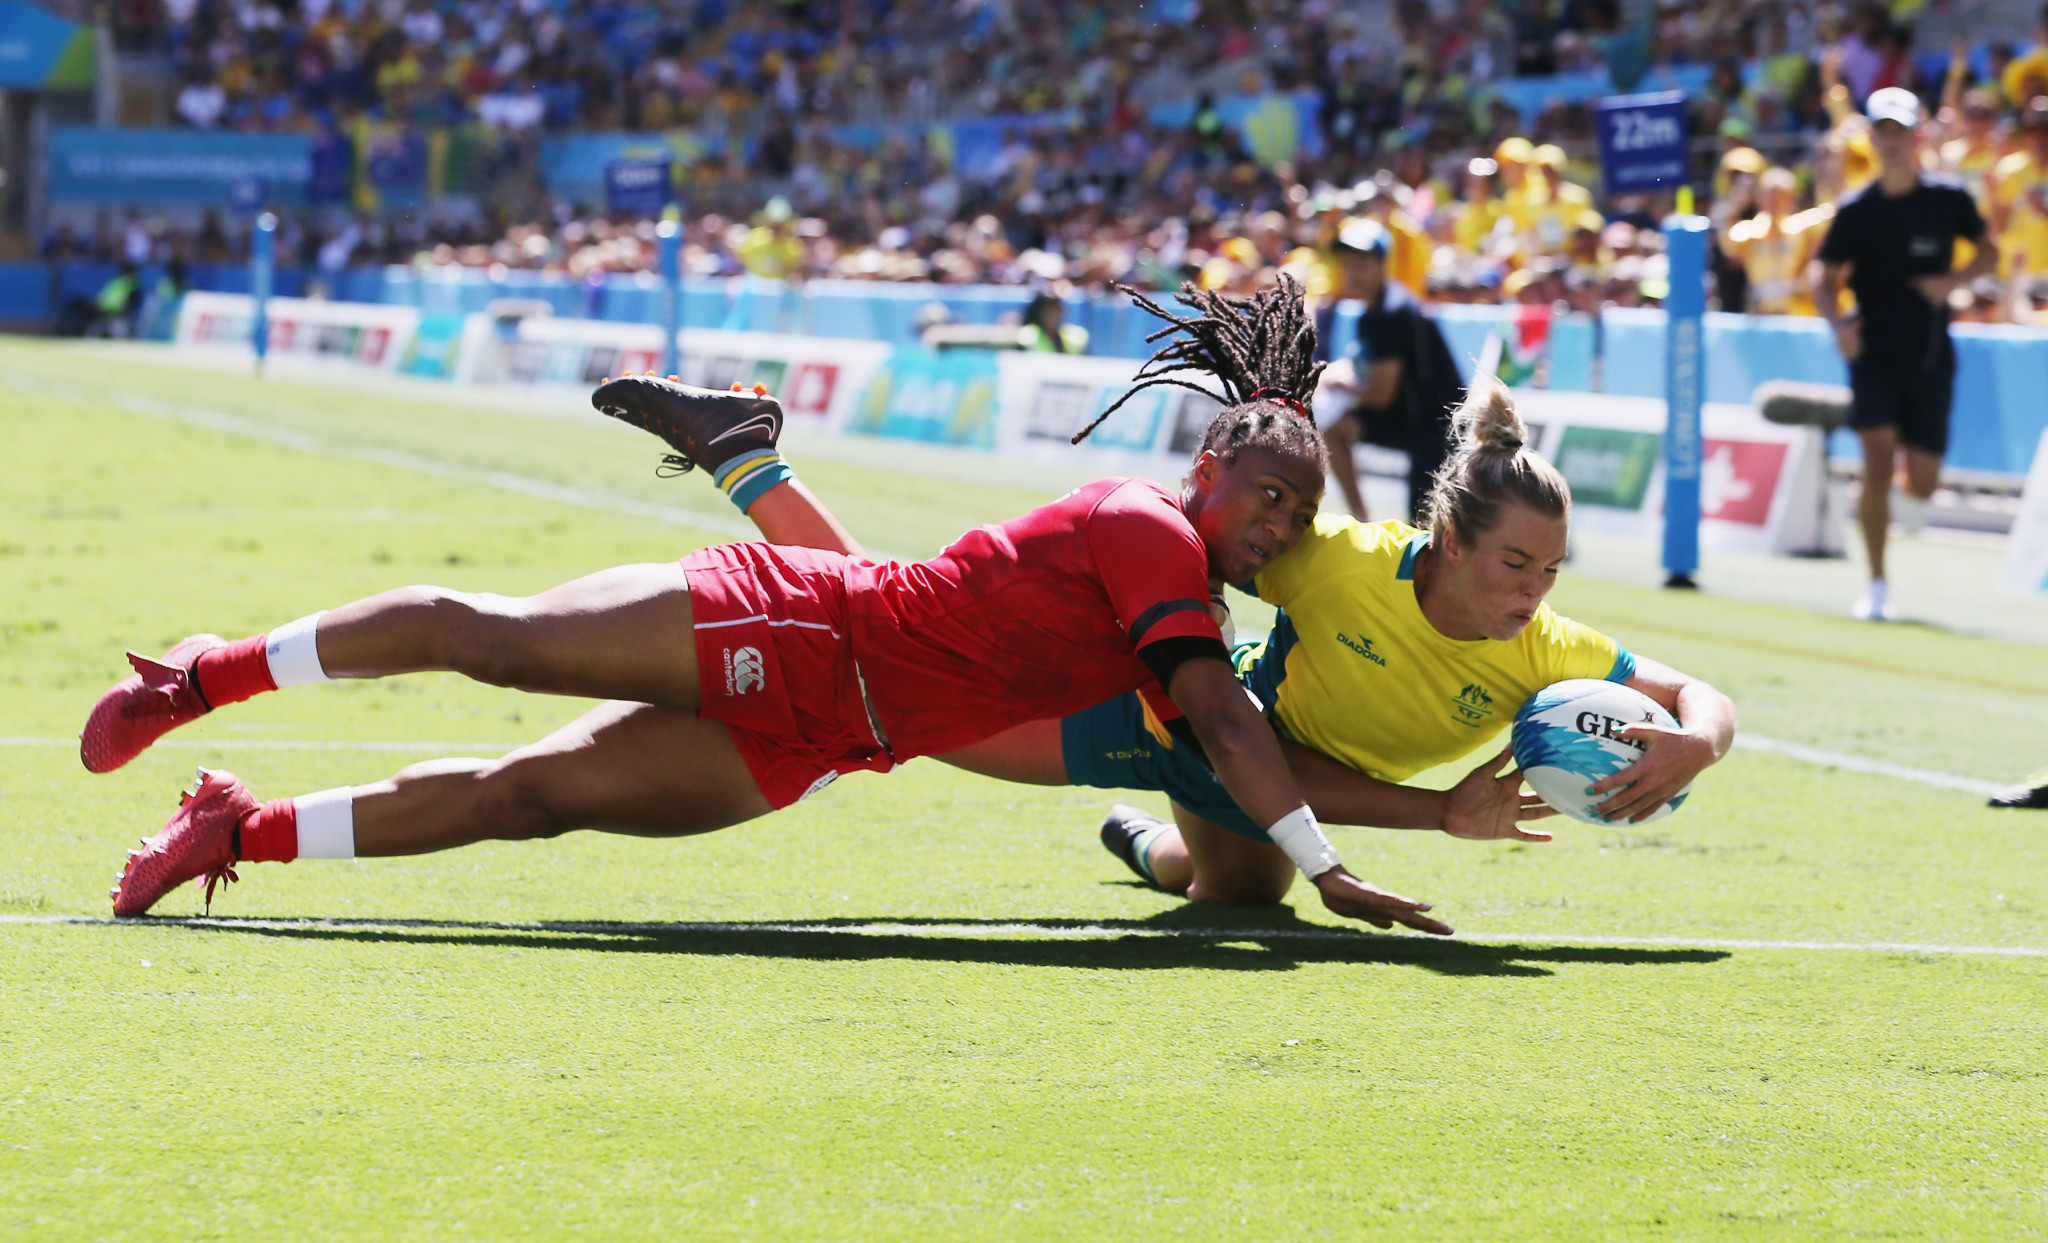 Rugby sevens took place on the concluding weekend  ©Getty Images